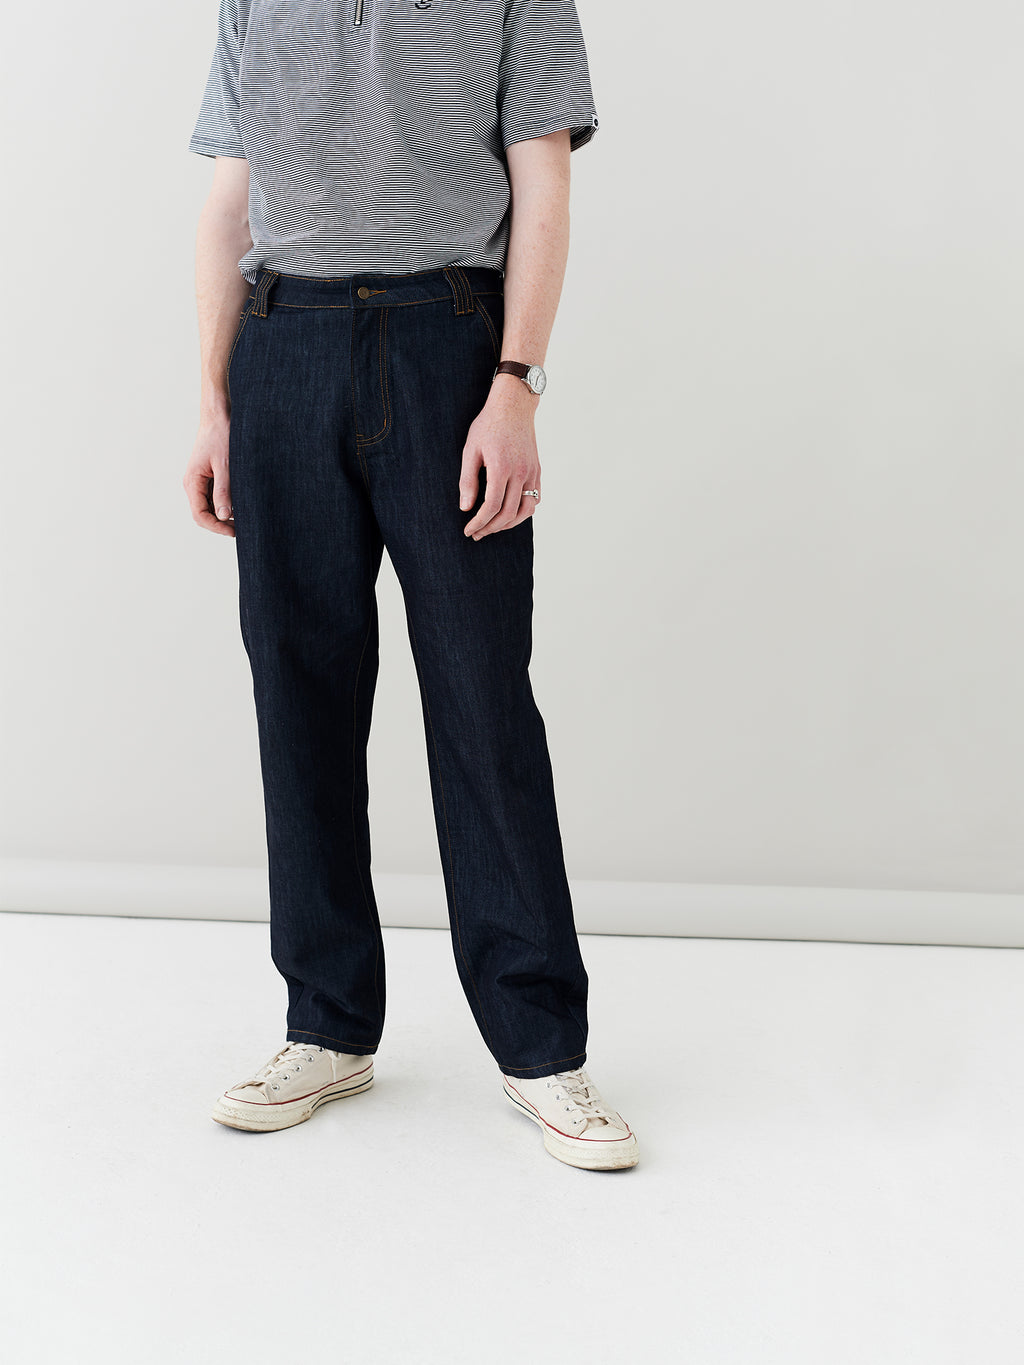 LO Relaxed Fit Jeans